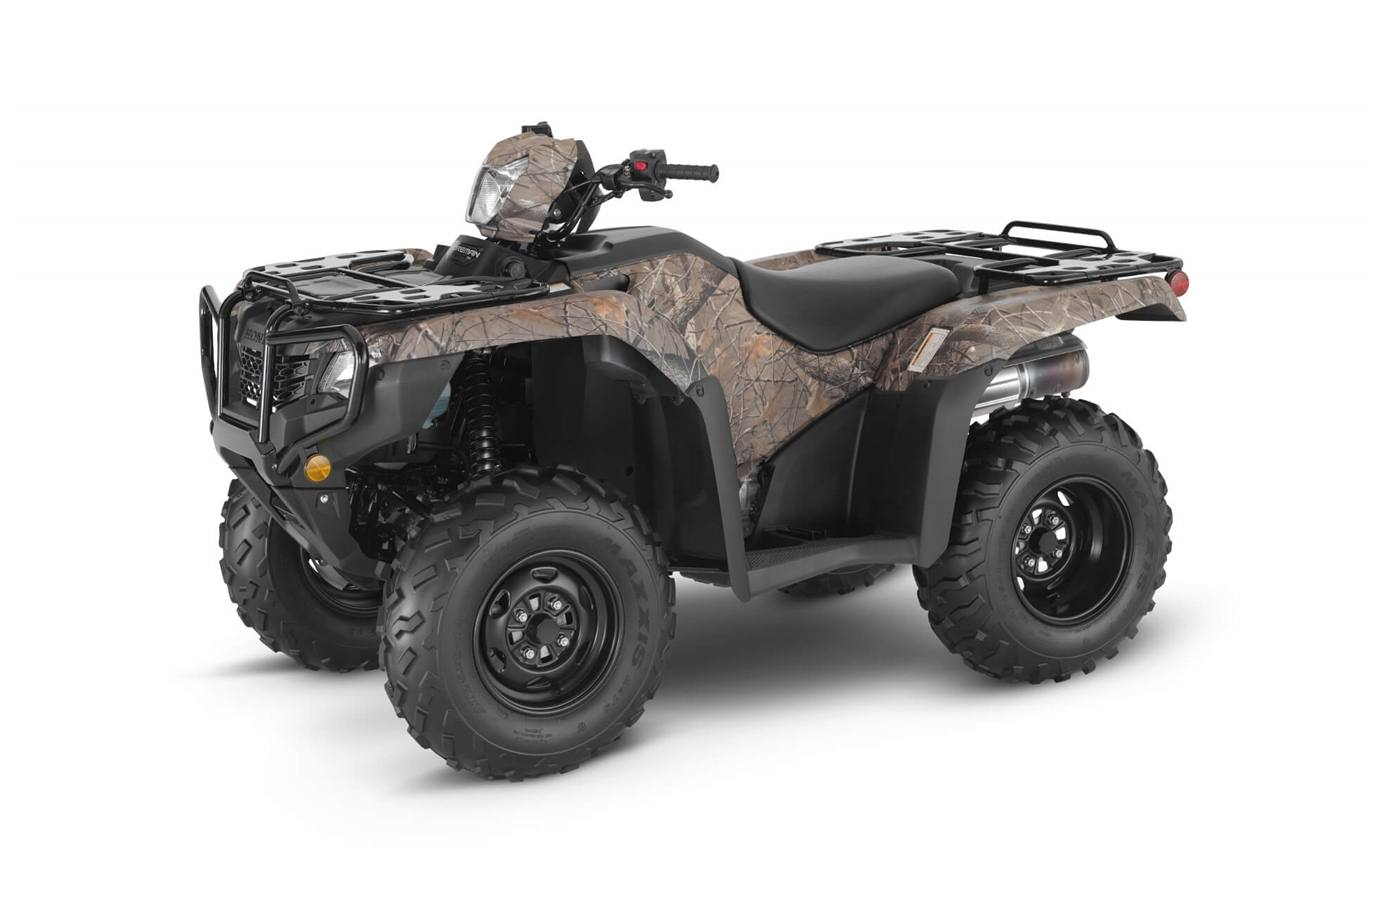 2021 Cruiser/V-Twin and ATV Dreyer South Powersports ...